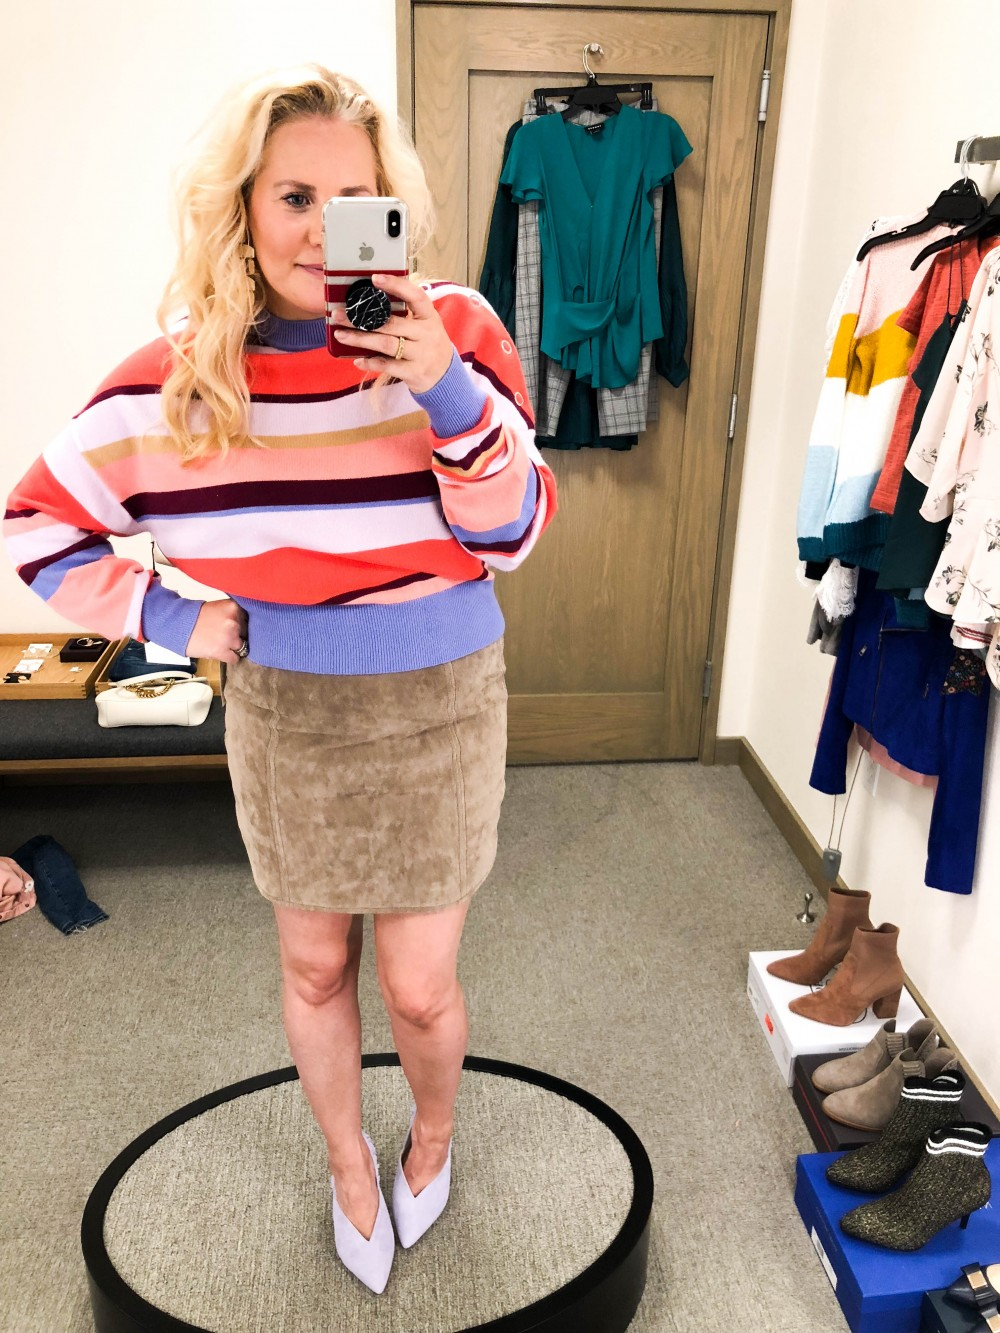 2018 Nordstrom Anniversary Sale Early Access Dressing Room Try-On Session, Have Need Want